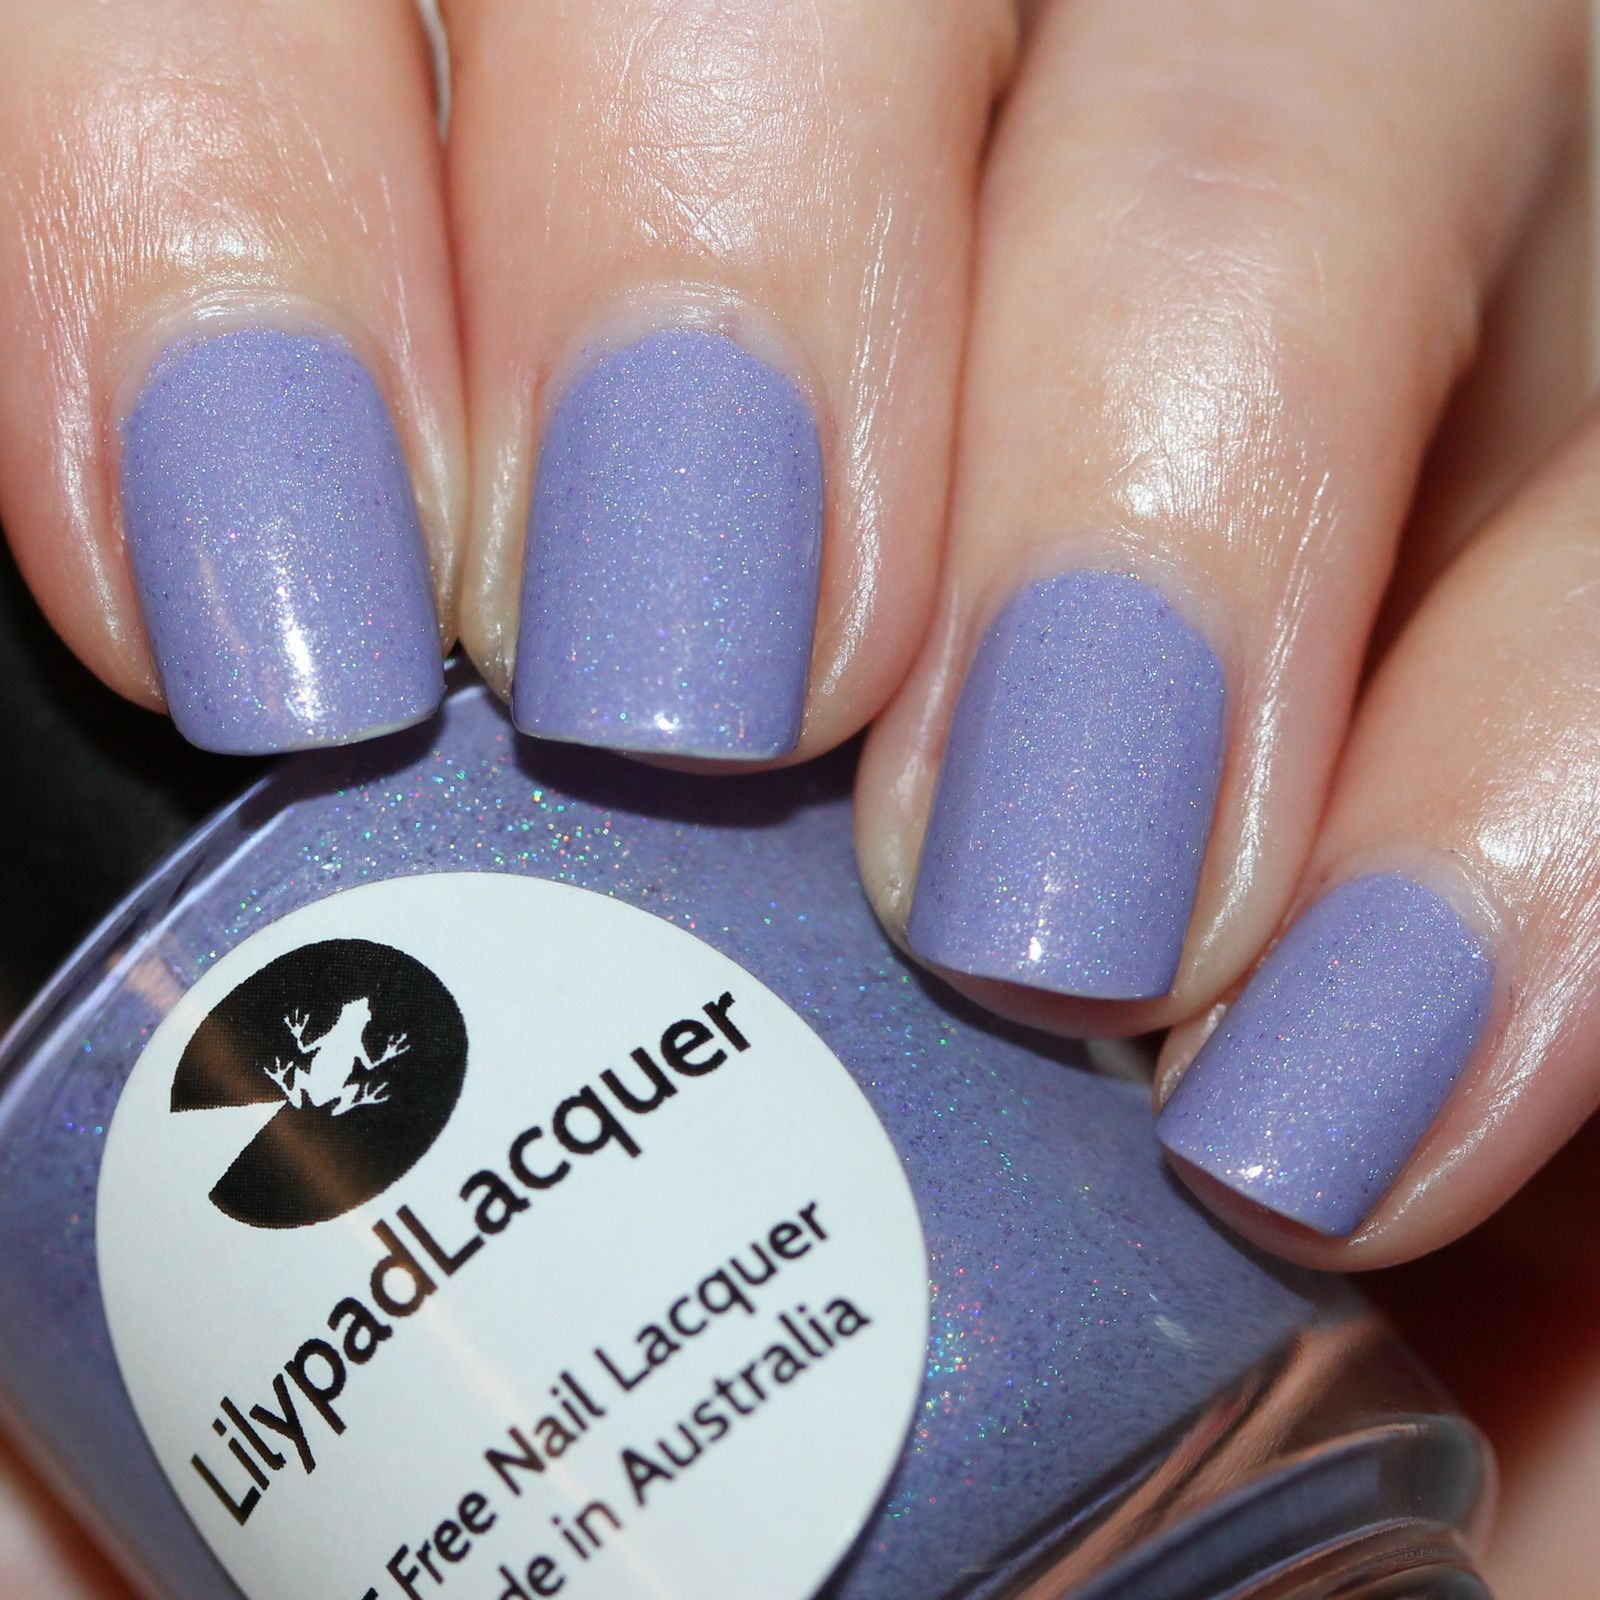 Duri Rejuvacote / Lilypad Lacquer Passion / Sally Hansen Miracle Gel Top Coat